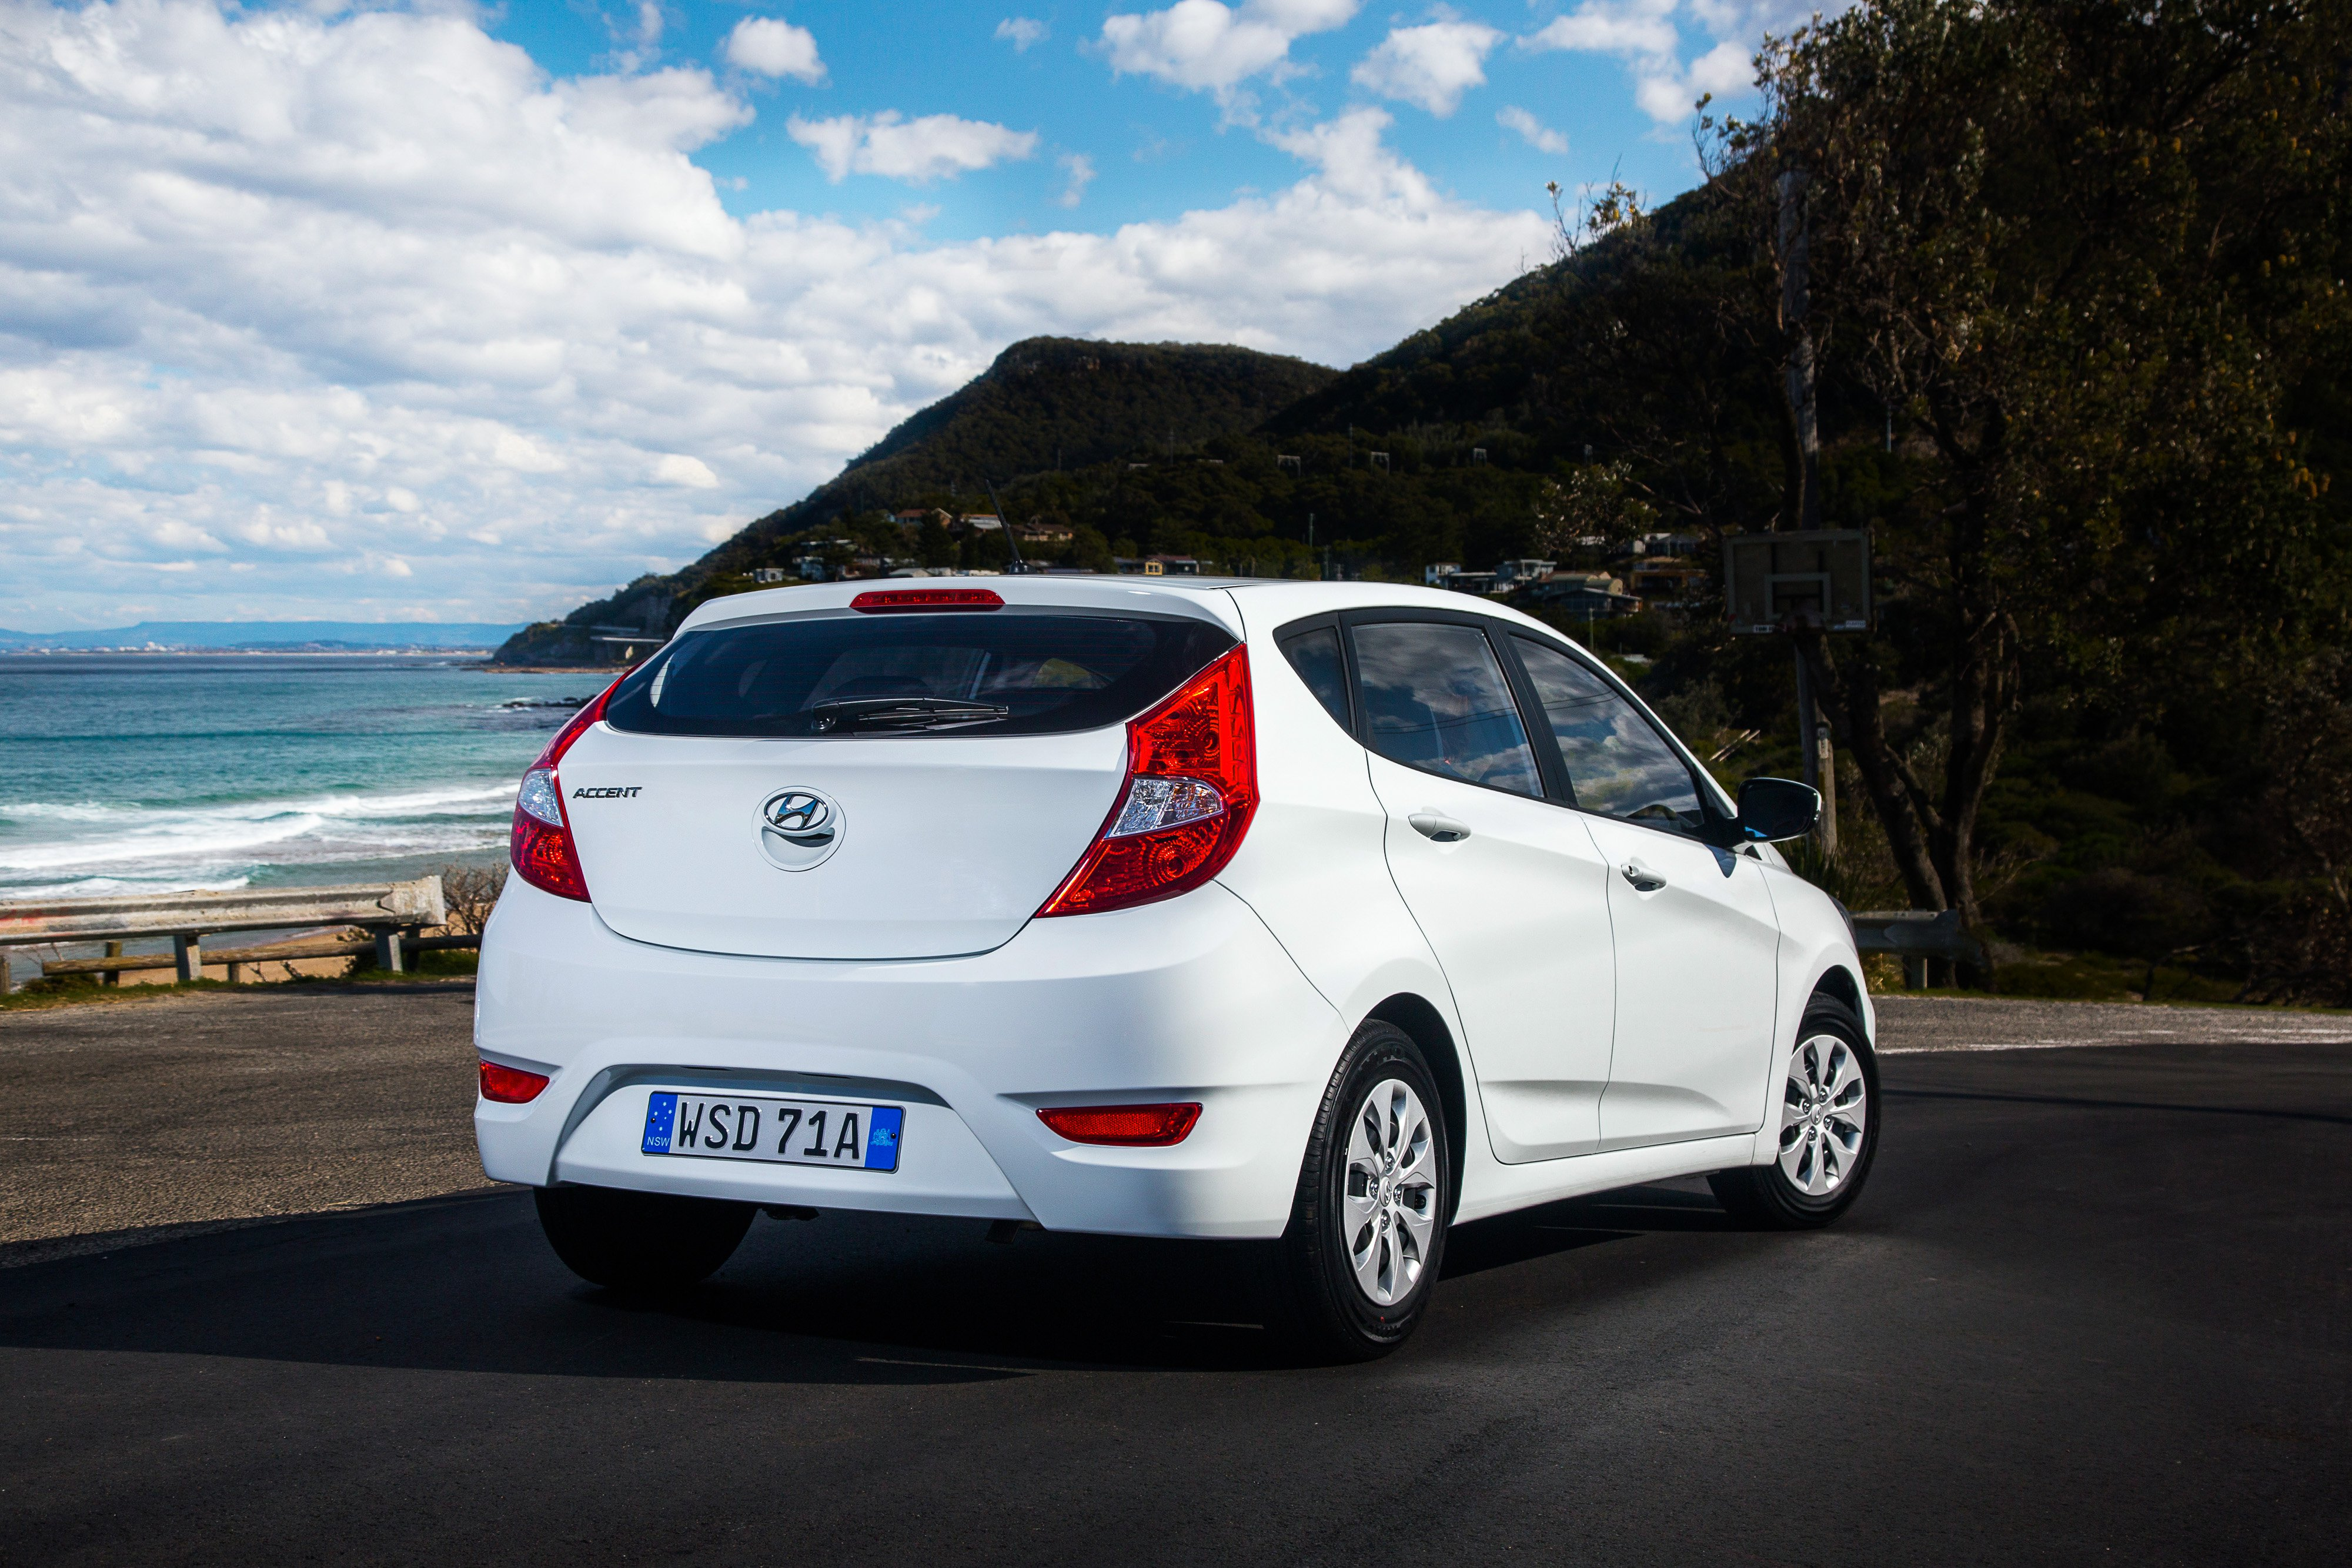 2015 Hyundai Accent Pricing And Specifications Caradvice